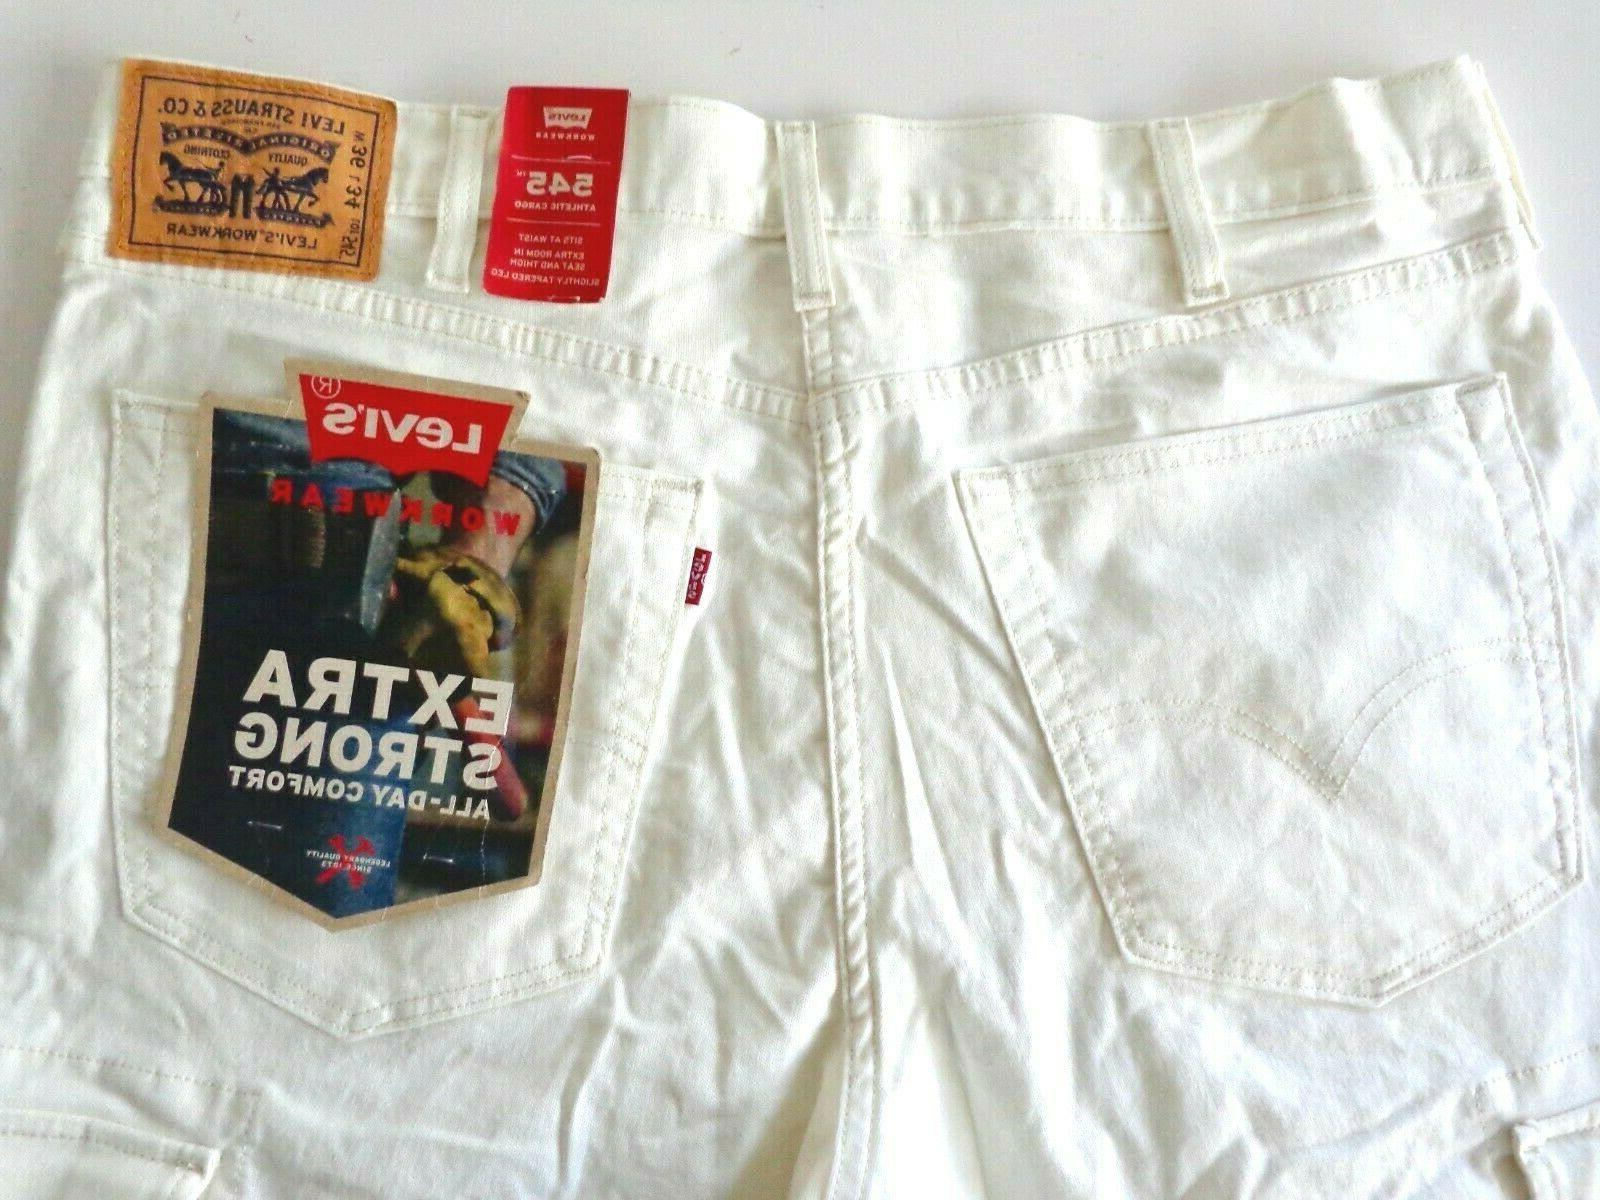 Levis Men's Workwear Jeans Extra Strong pants 36 x